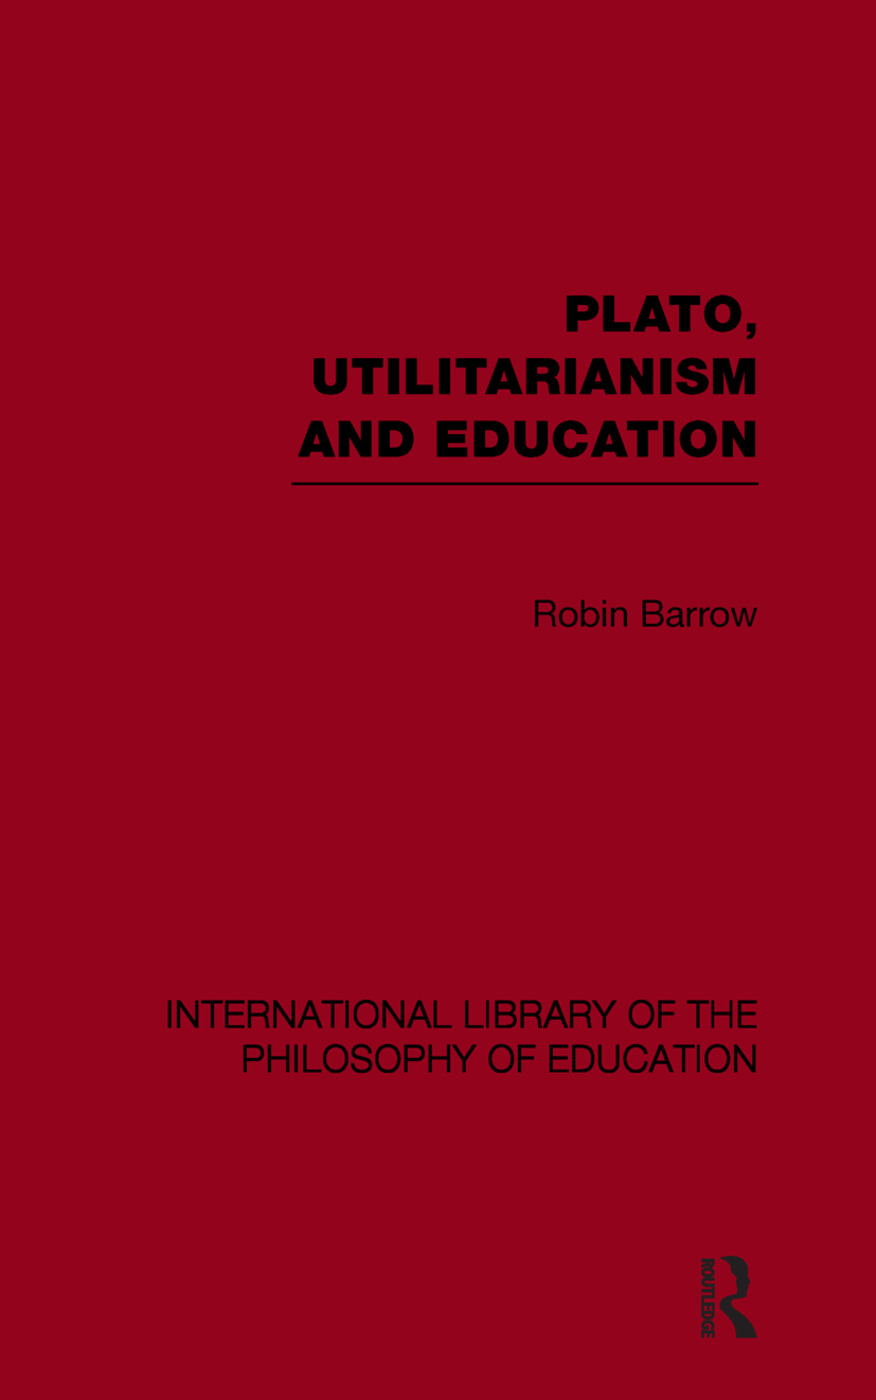 Plato, Utilitarianism and Education (International Library of the Philosophy of Education Volume 3)